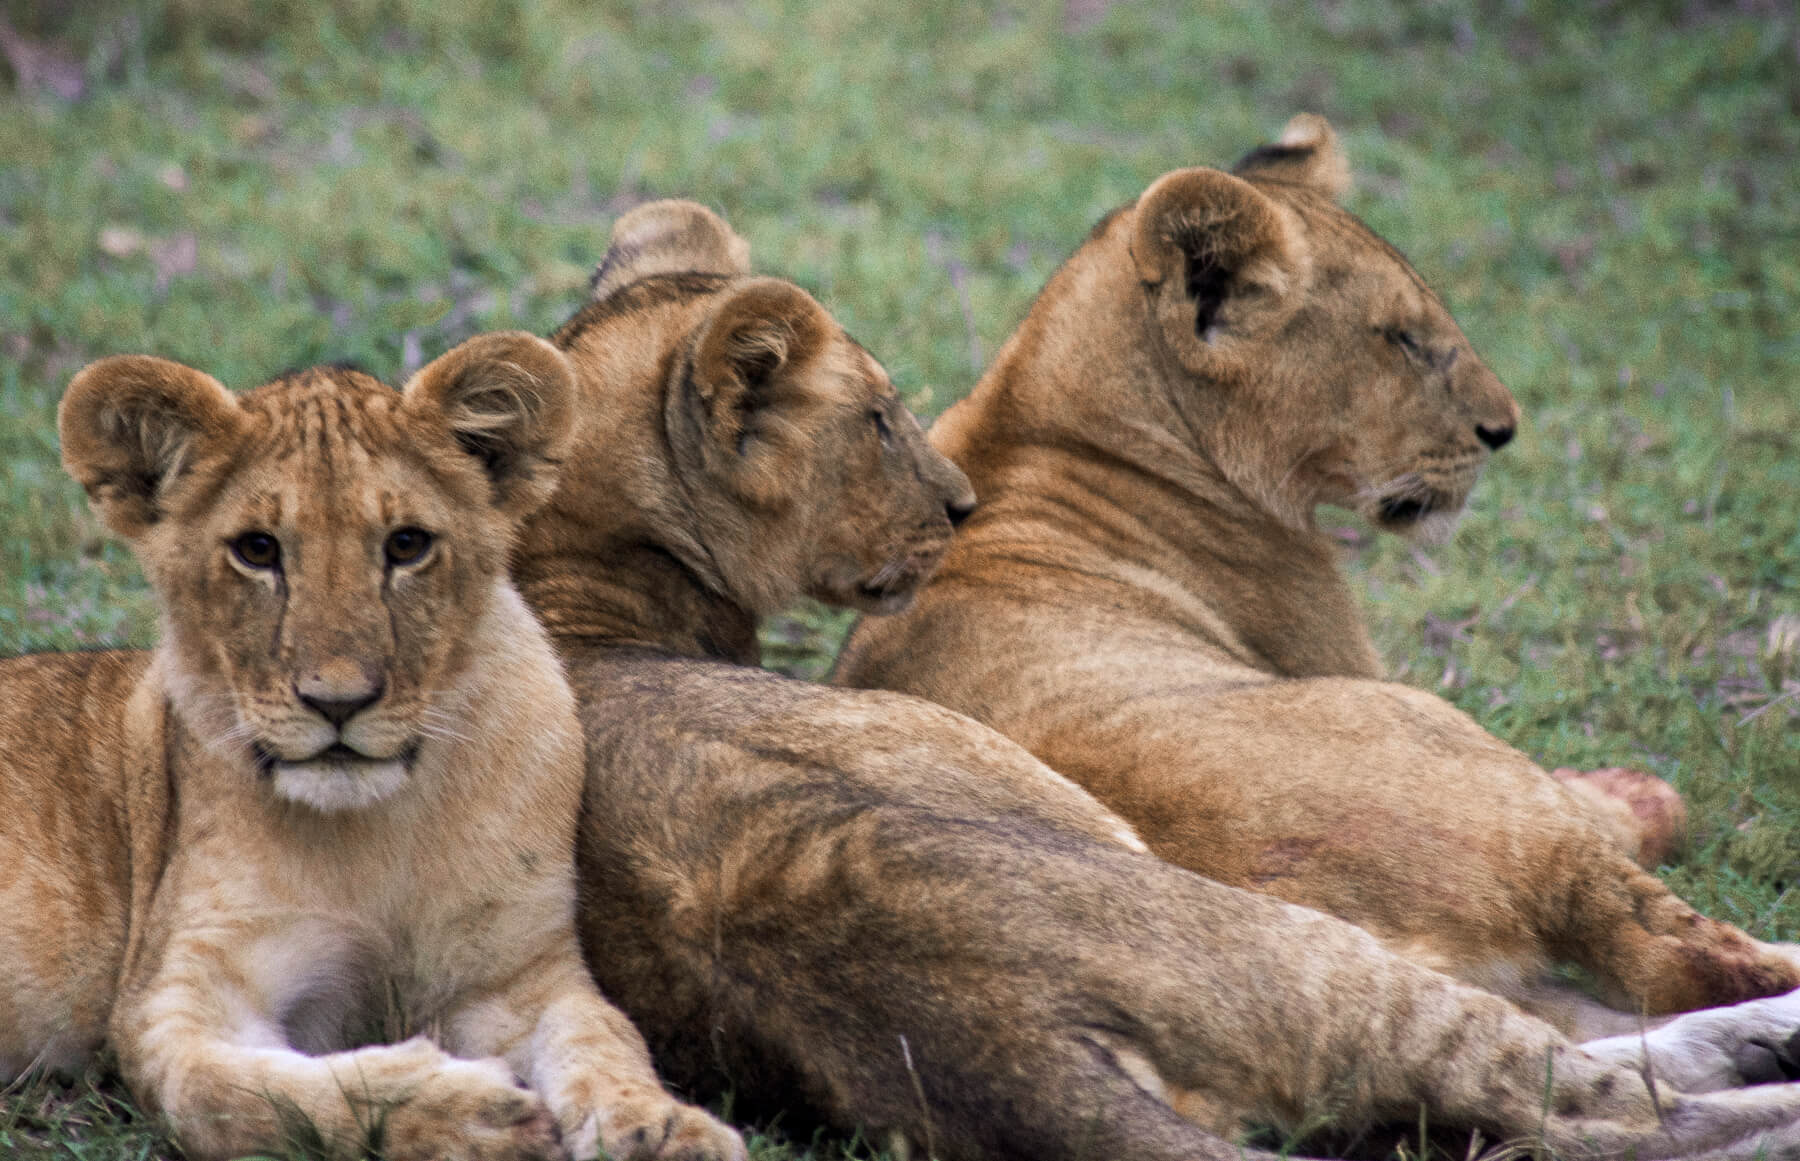 3 lion cubs cuddled up to each other - One looking into the camera